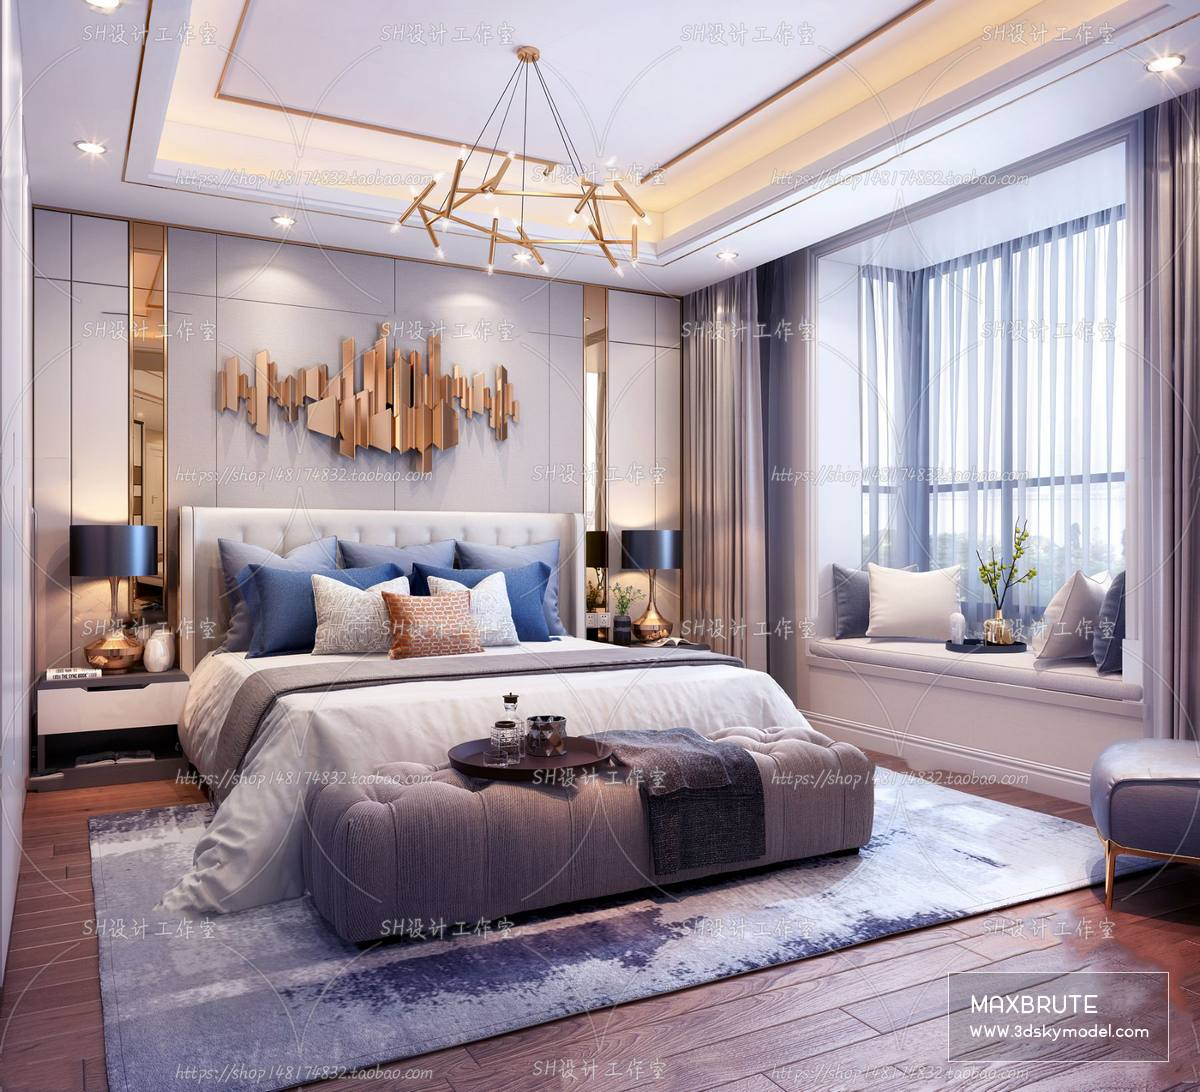 Sell Bedroom Mix Style 2019 3dsmax Maxbrute Furniture Visualization